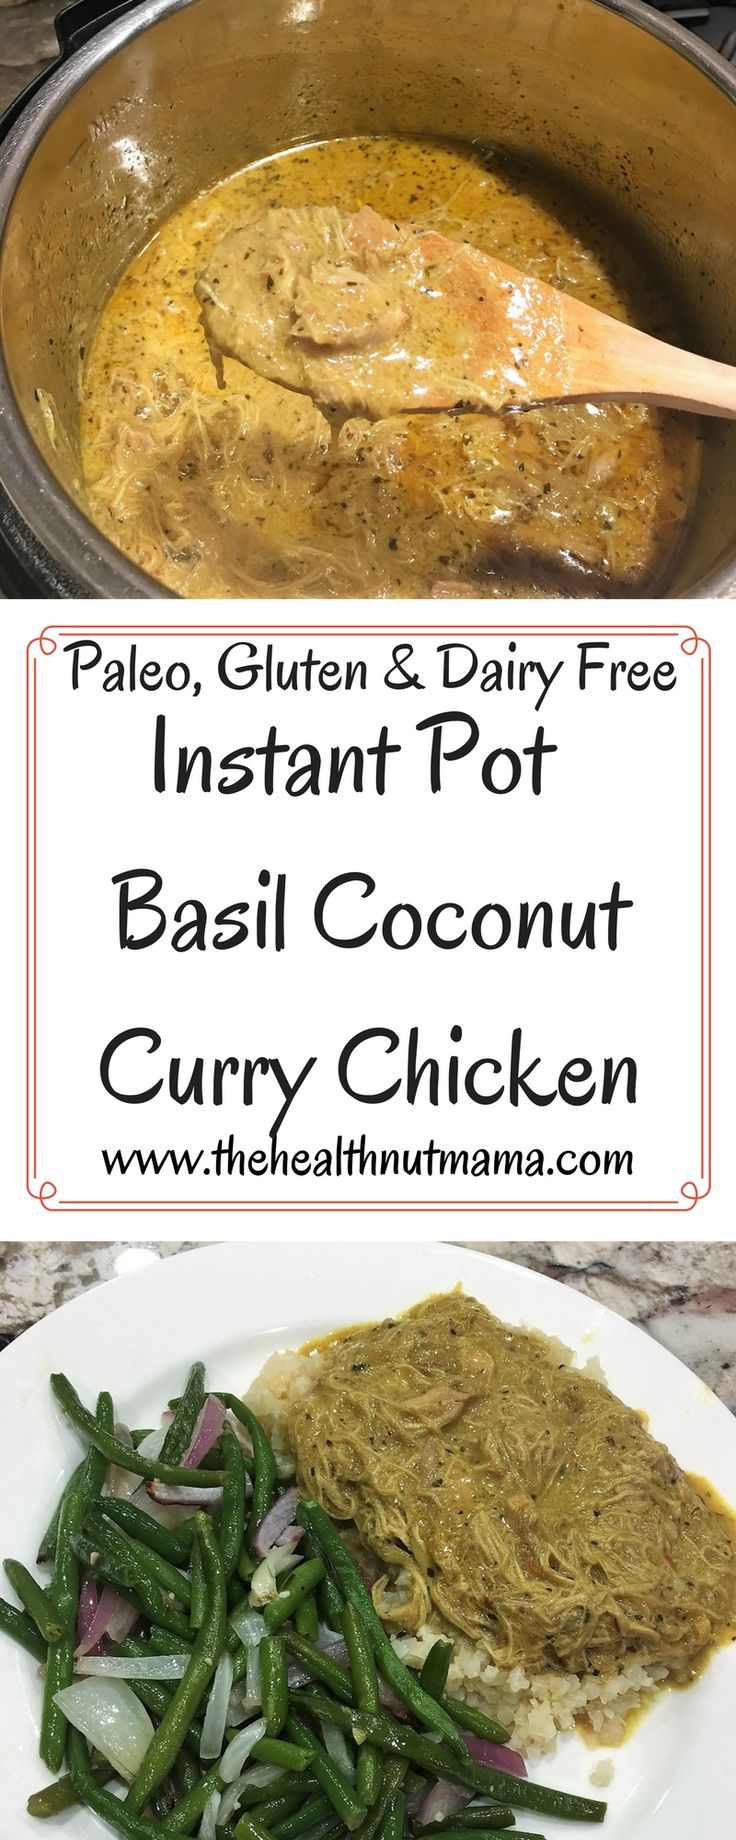 Instant Pot Basil Coconut Curry Chicken. Quick, Easy, Healthy & Delicious . Can make the whole meal in less than 30 min. Husband & kid approved! www.thehealthnutmama.com